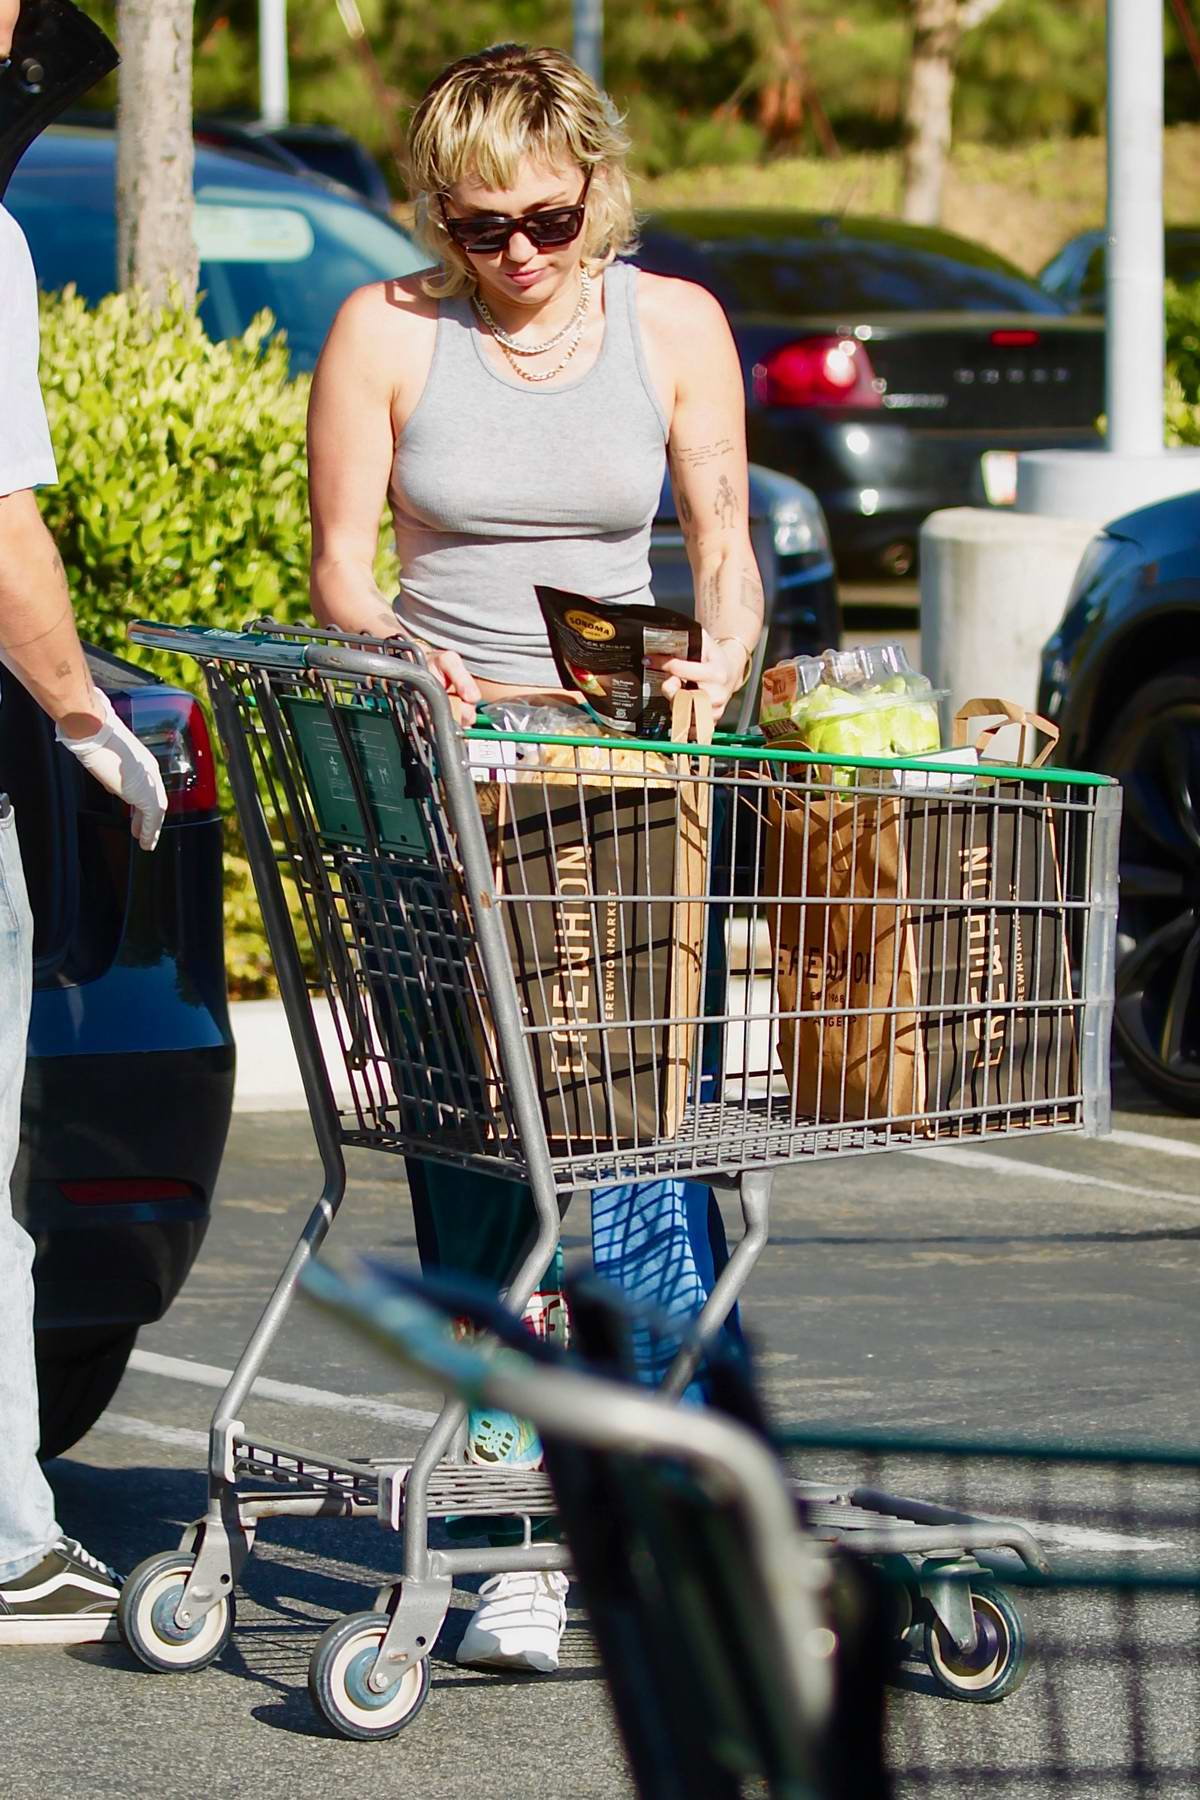 Miley Cyrus and Cody Simpson step out to get some groceries at Erewhon Market in Los Angeles